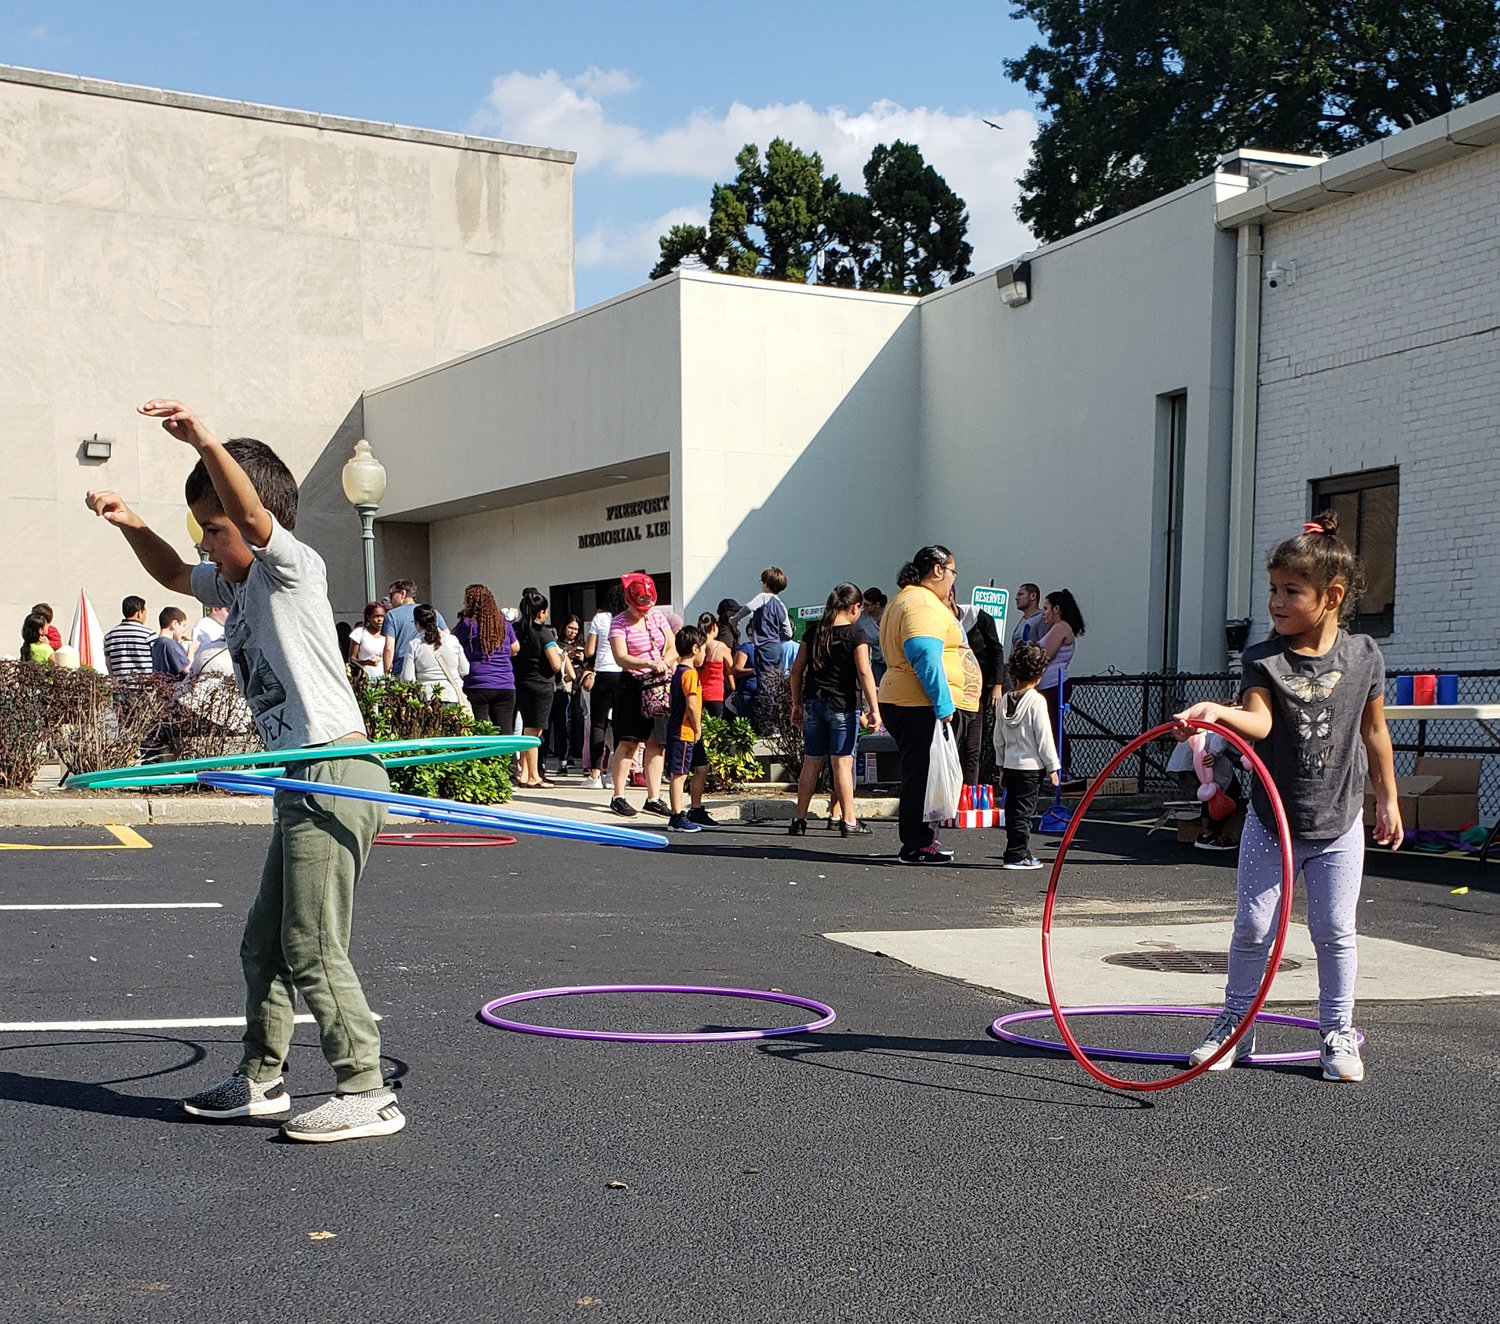 Hector and Liv Santiago, ages 6 and 4, showed off their hula-hoop skills at the Freeport Memorial Library Fall Festival on Sept. 29.